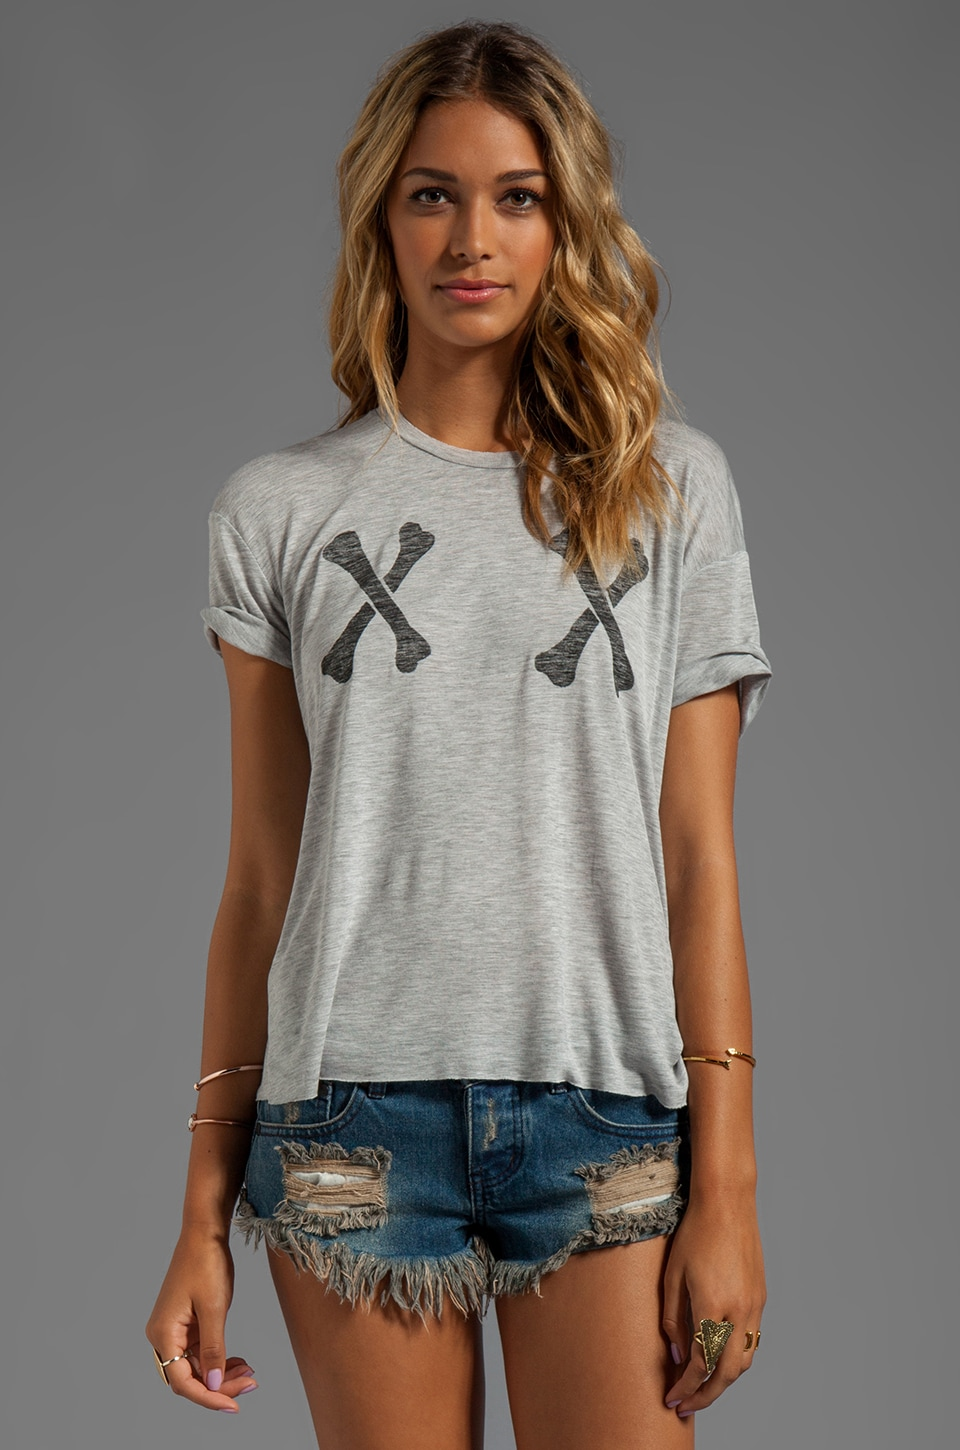 Zoe Karssen X-Bones Box Fit Tee in Grey Heather